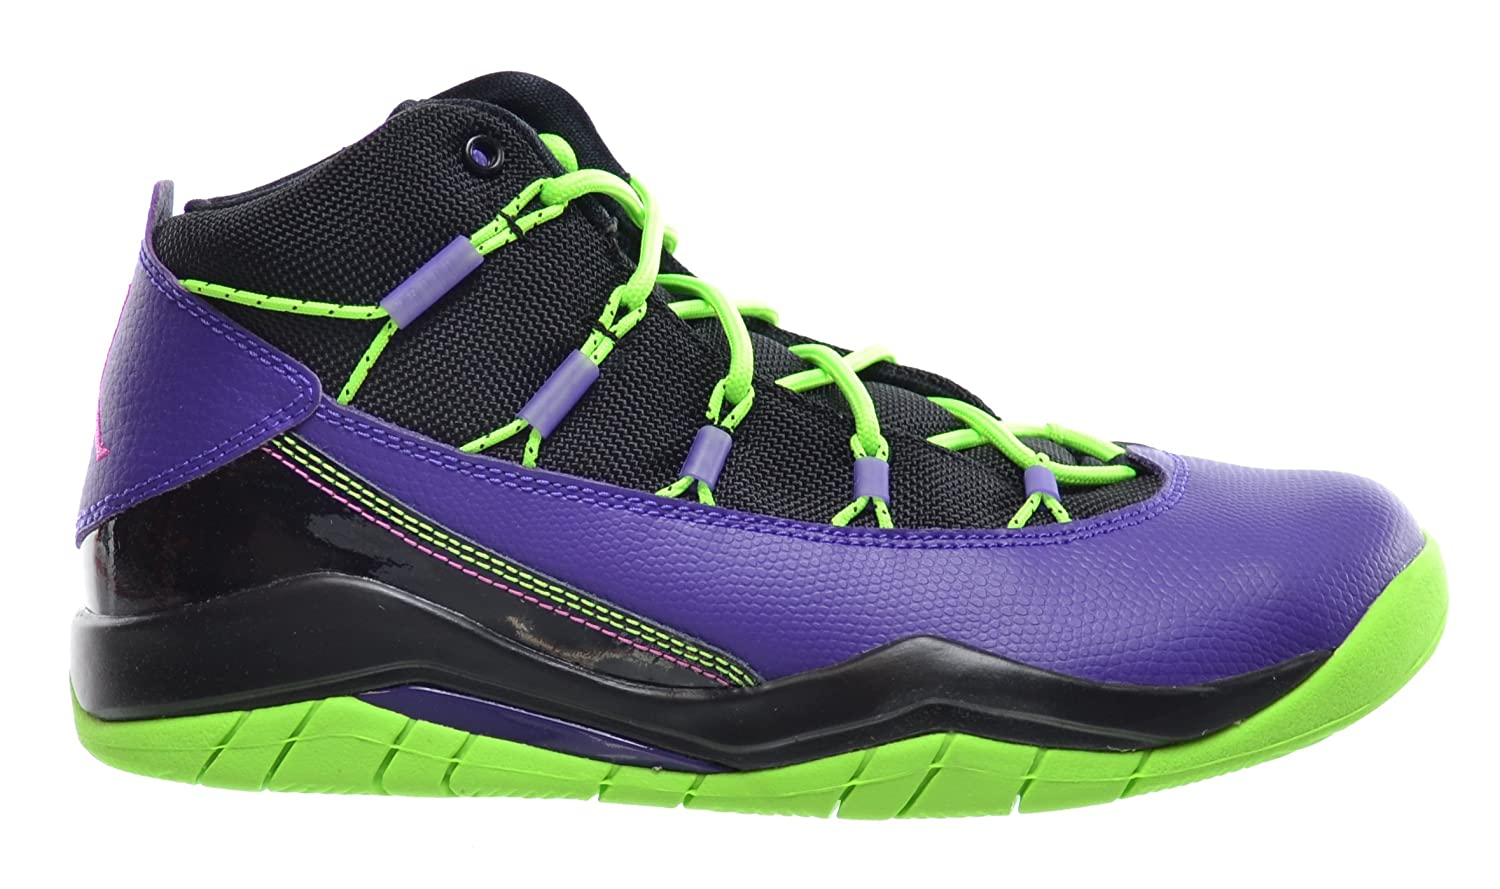 meet 20dc0 2cdb6 Jordan Prime Flight (GS) Big Kids Basketball Shoes Black Club  Pink-Purple-Flash Lime 616861-018 (6 M US)  Amazon.ca  Shoes   Handbags